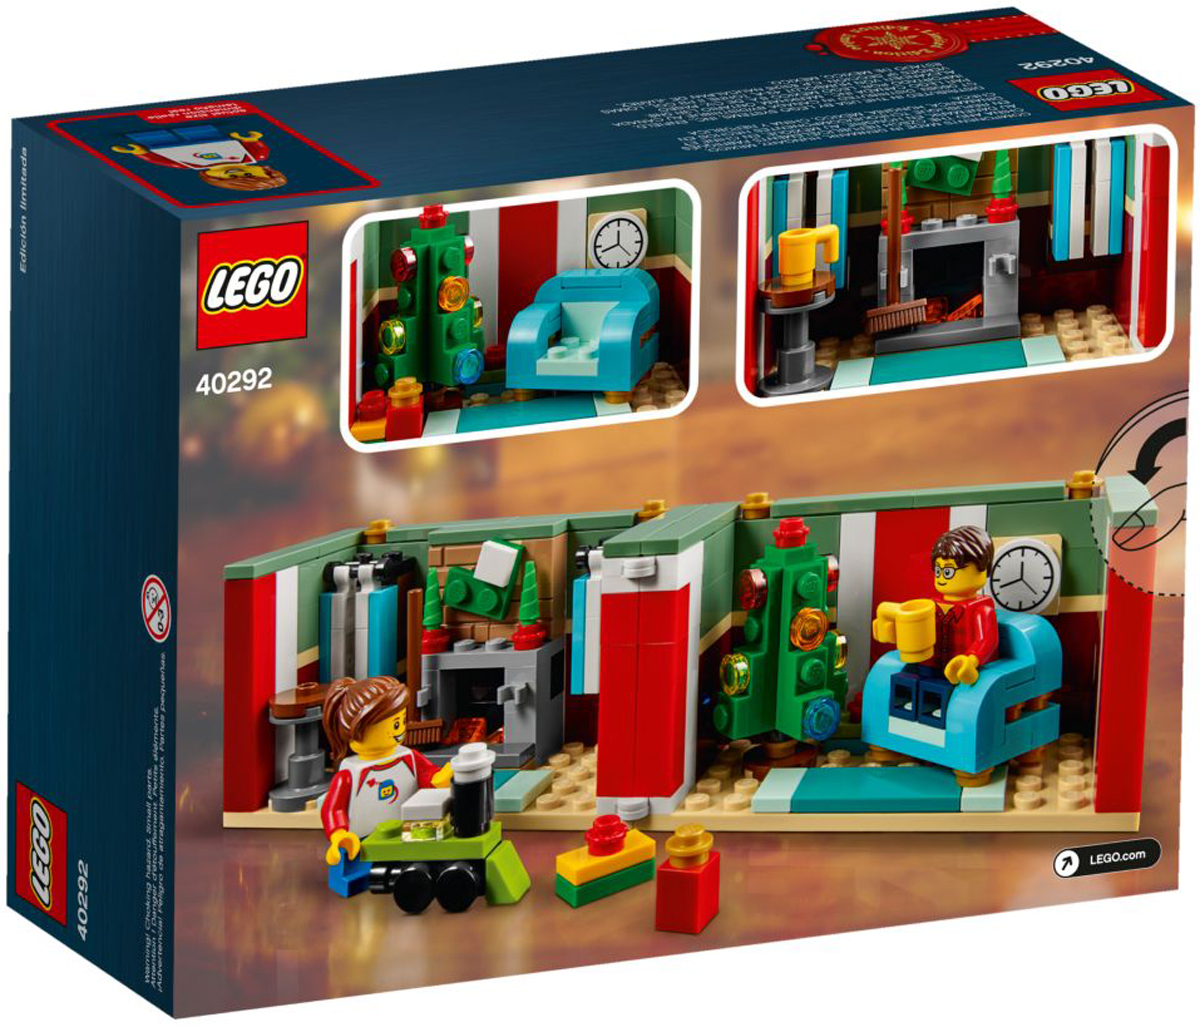 Lego 40292 Limited Edition Christmas Gift Brand New